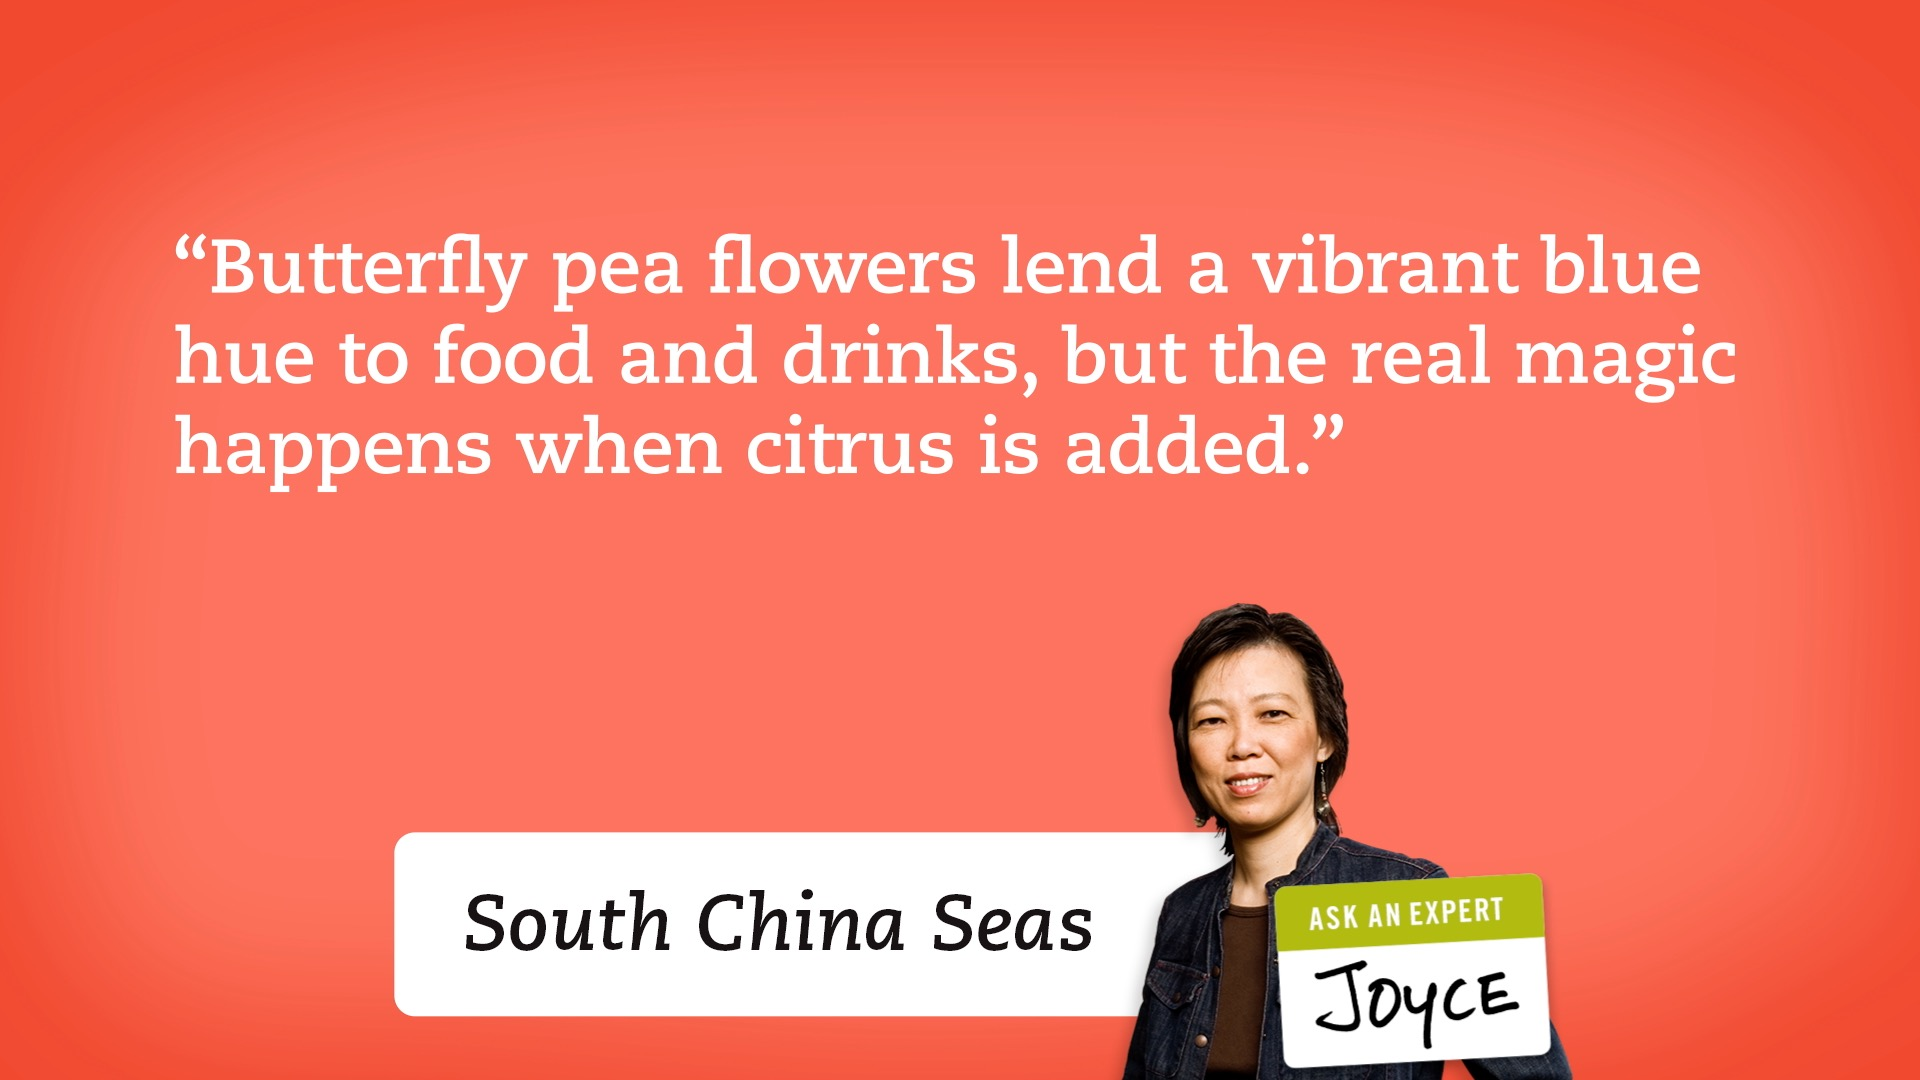 """Butterfly pea flowers lend a vibrant blue hue to food and drinks, but the real magic happens when citrus is added."" - Joyce, South China Seas"